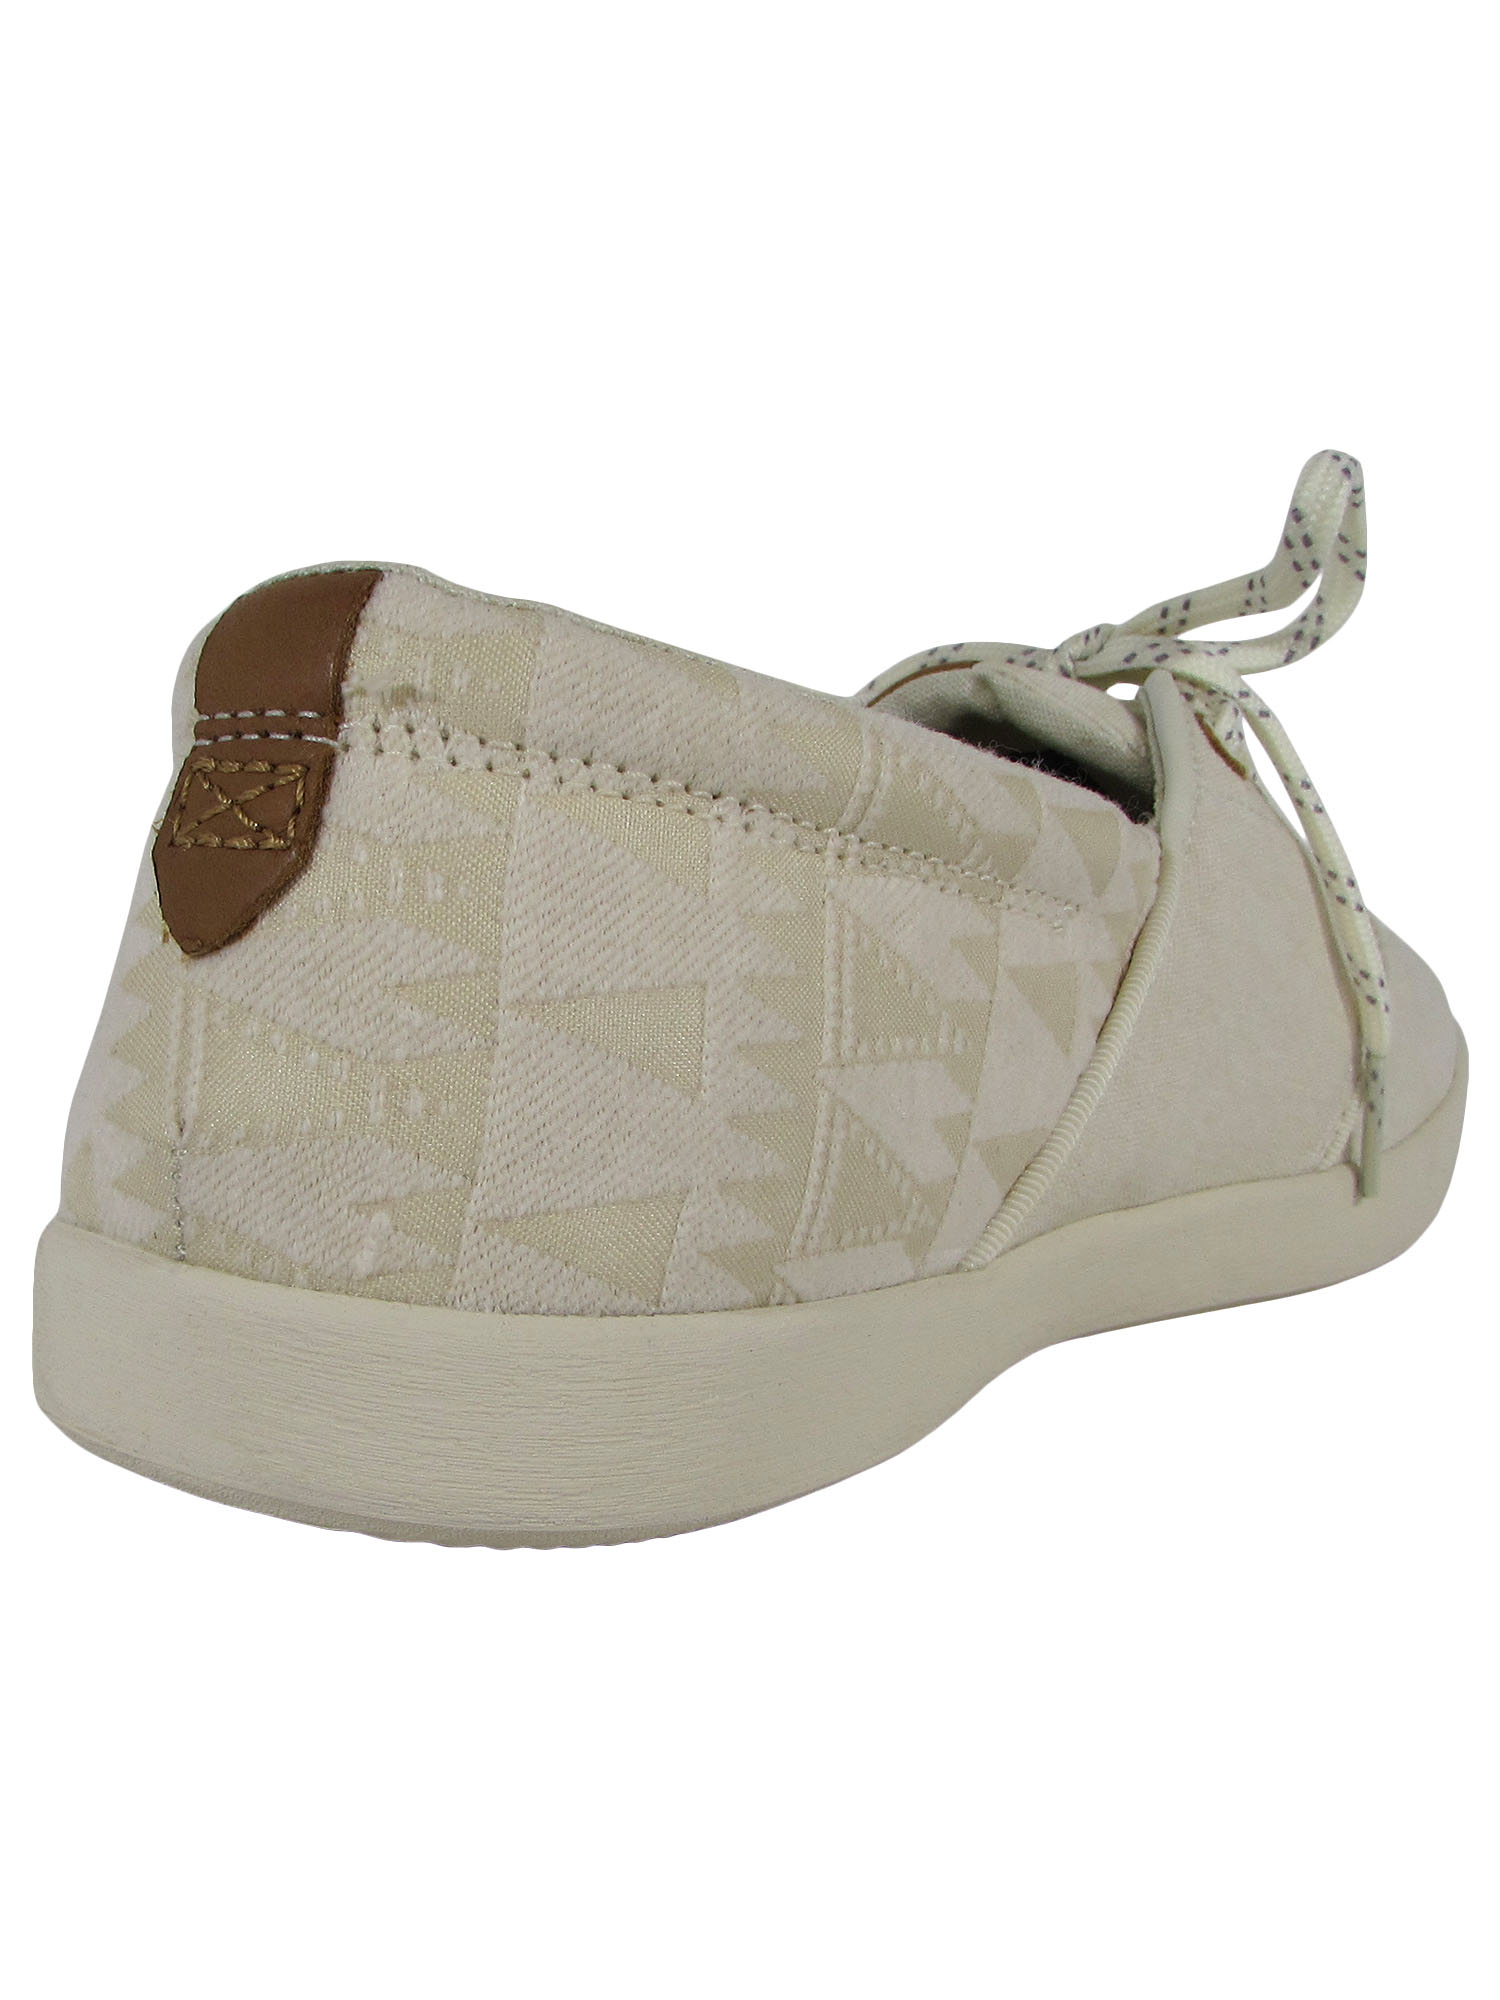 Teva-Womens-Willow-Lace-Up-Sneaker-Shoes thumbnail 7